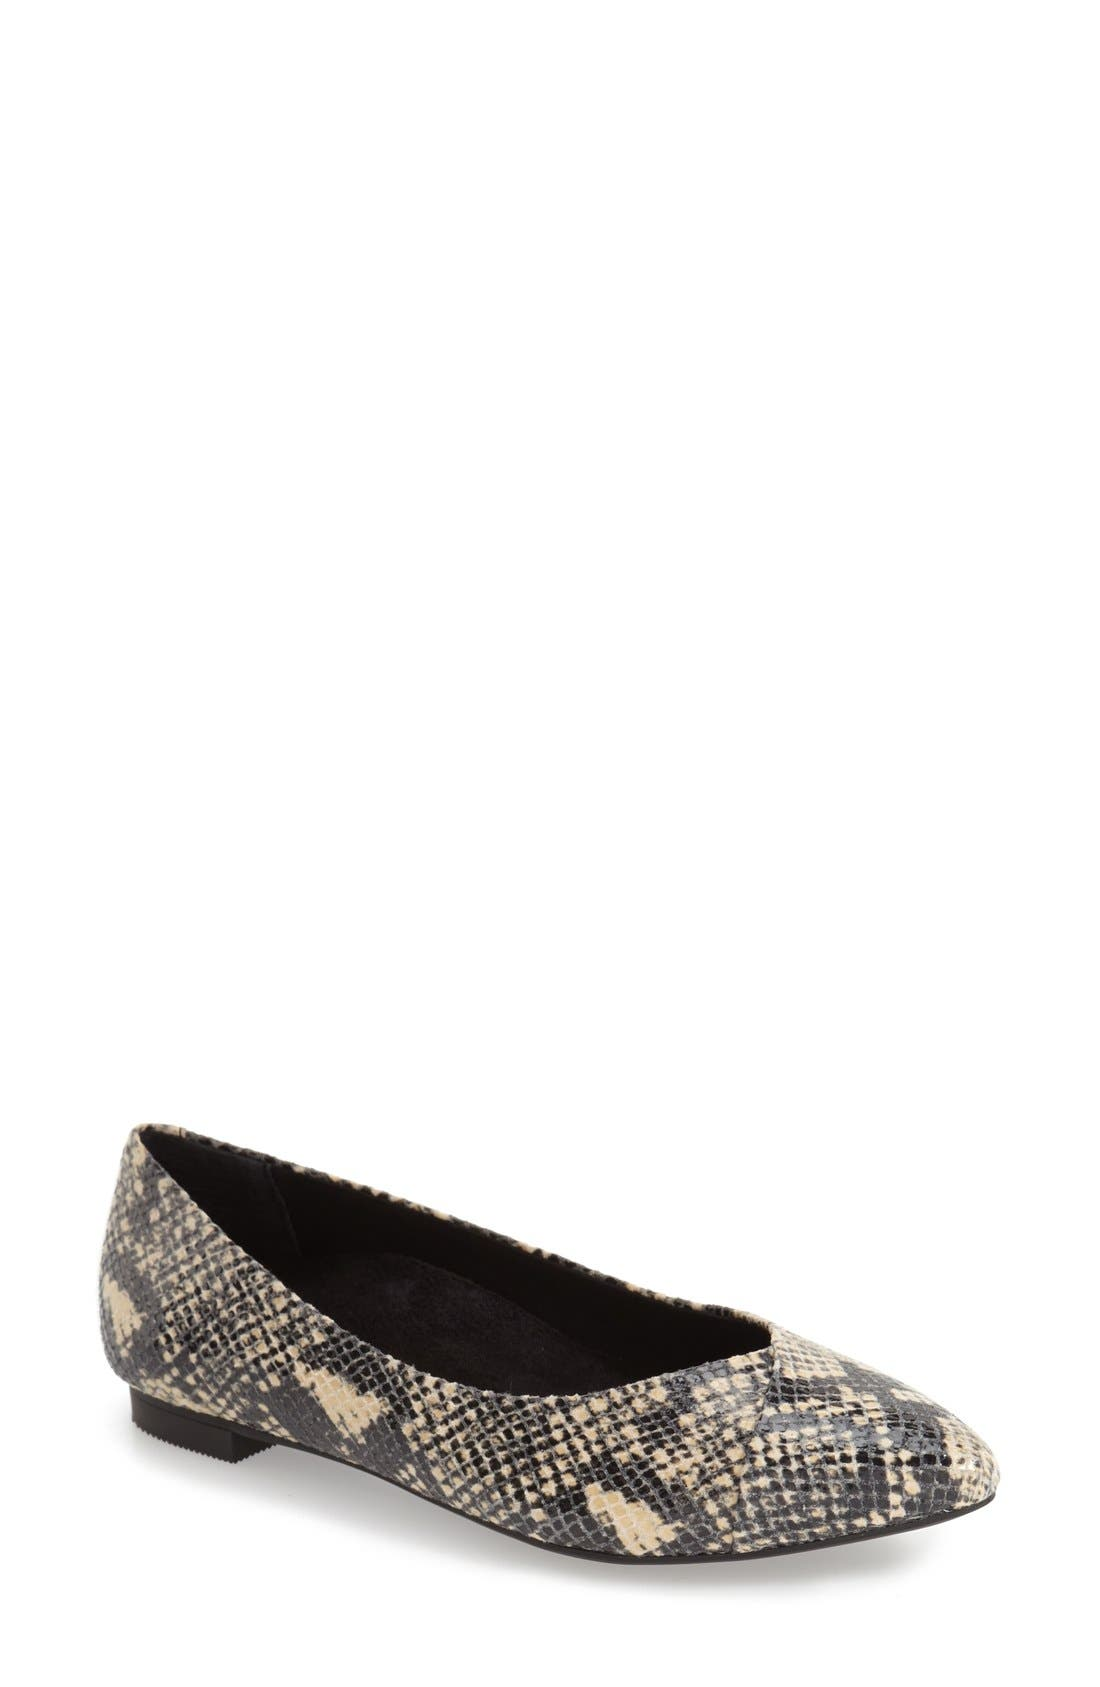 Alternate Image 1 Selected - Vionic 'Caballo' Pointy Toe Flat (Women)